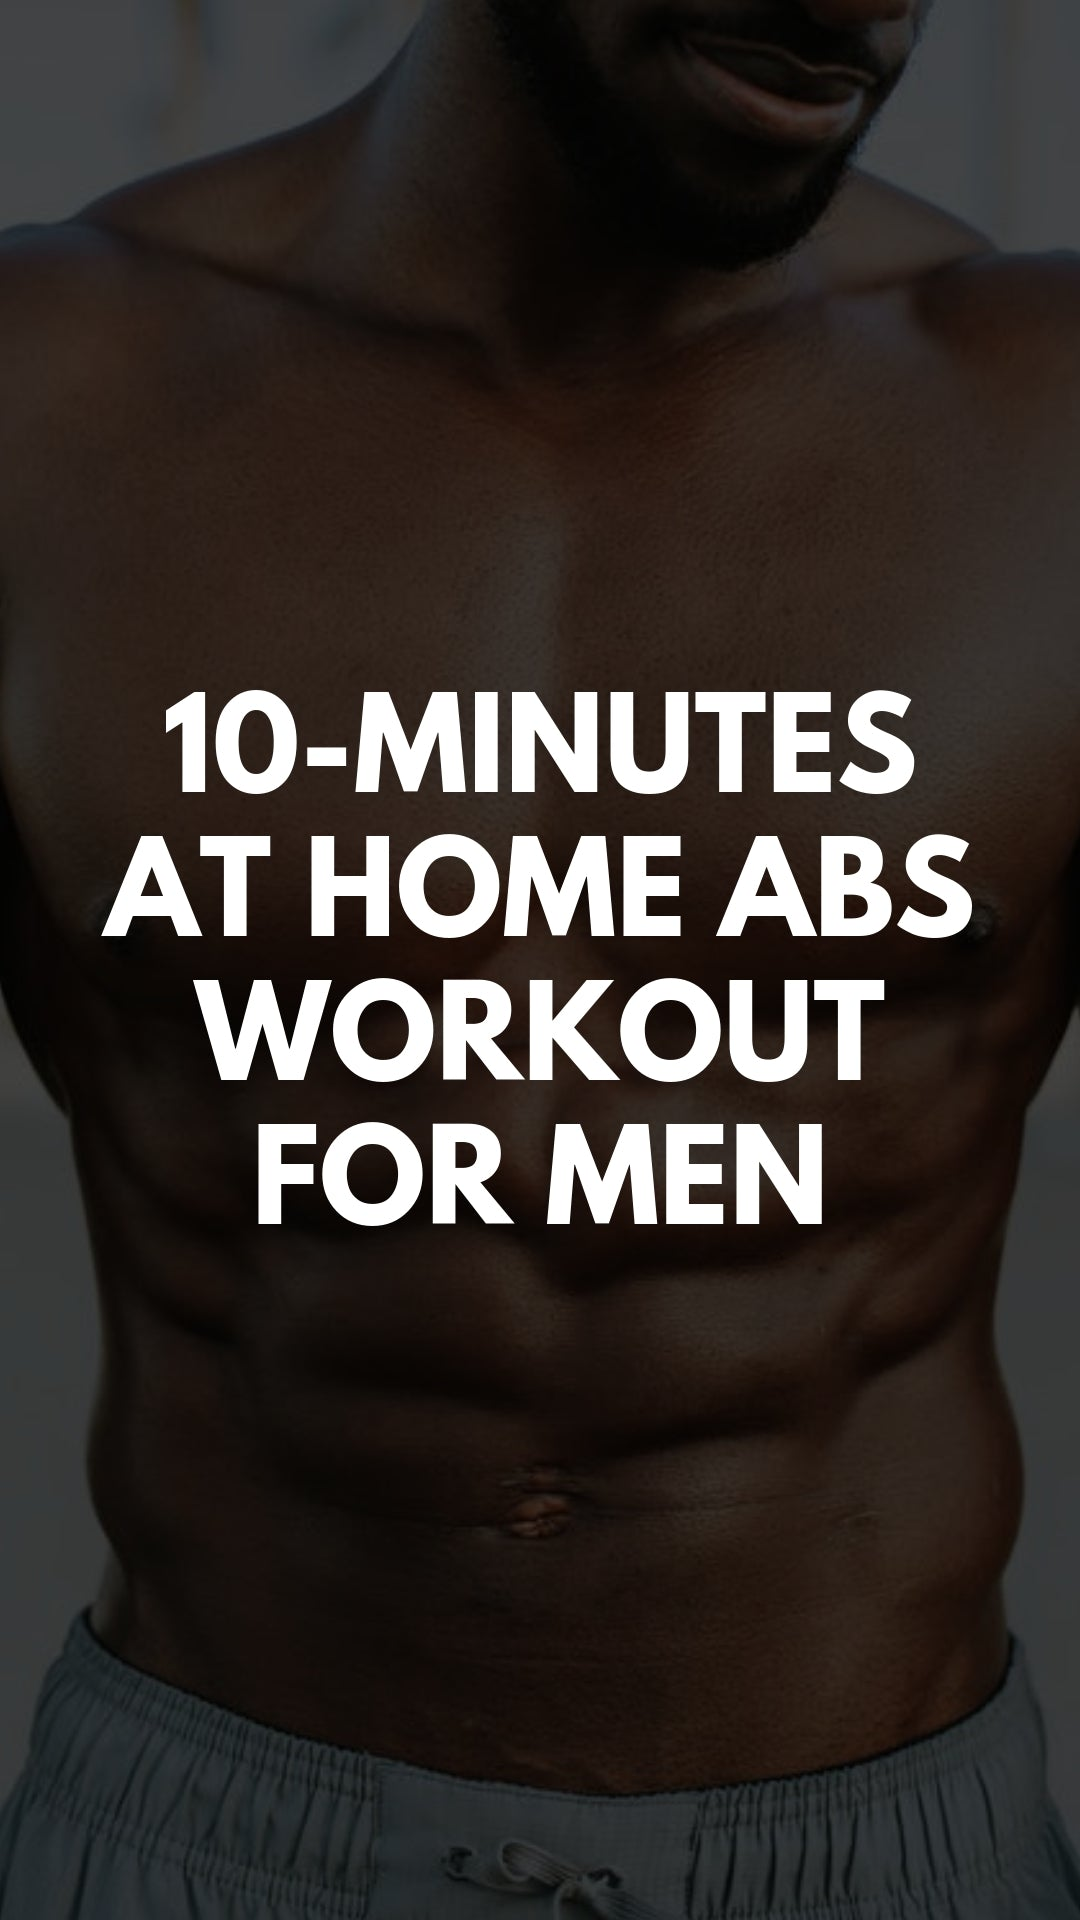 10 Minute Bodyweight Abs Workout You Can Do At Home #abs #workout #sixpackabs #fitness